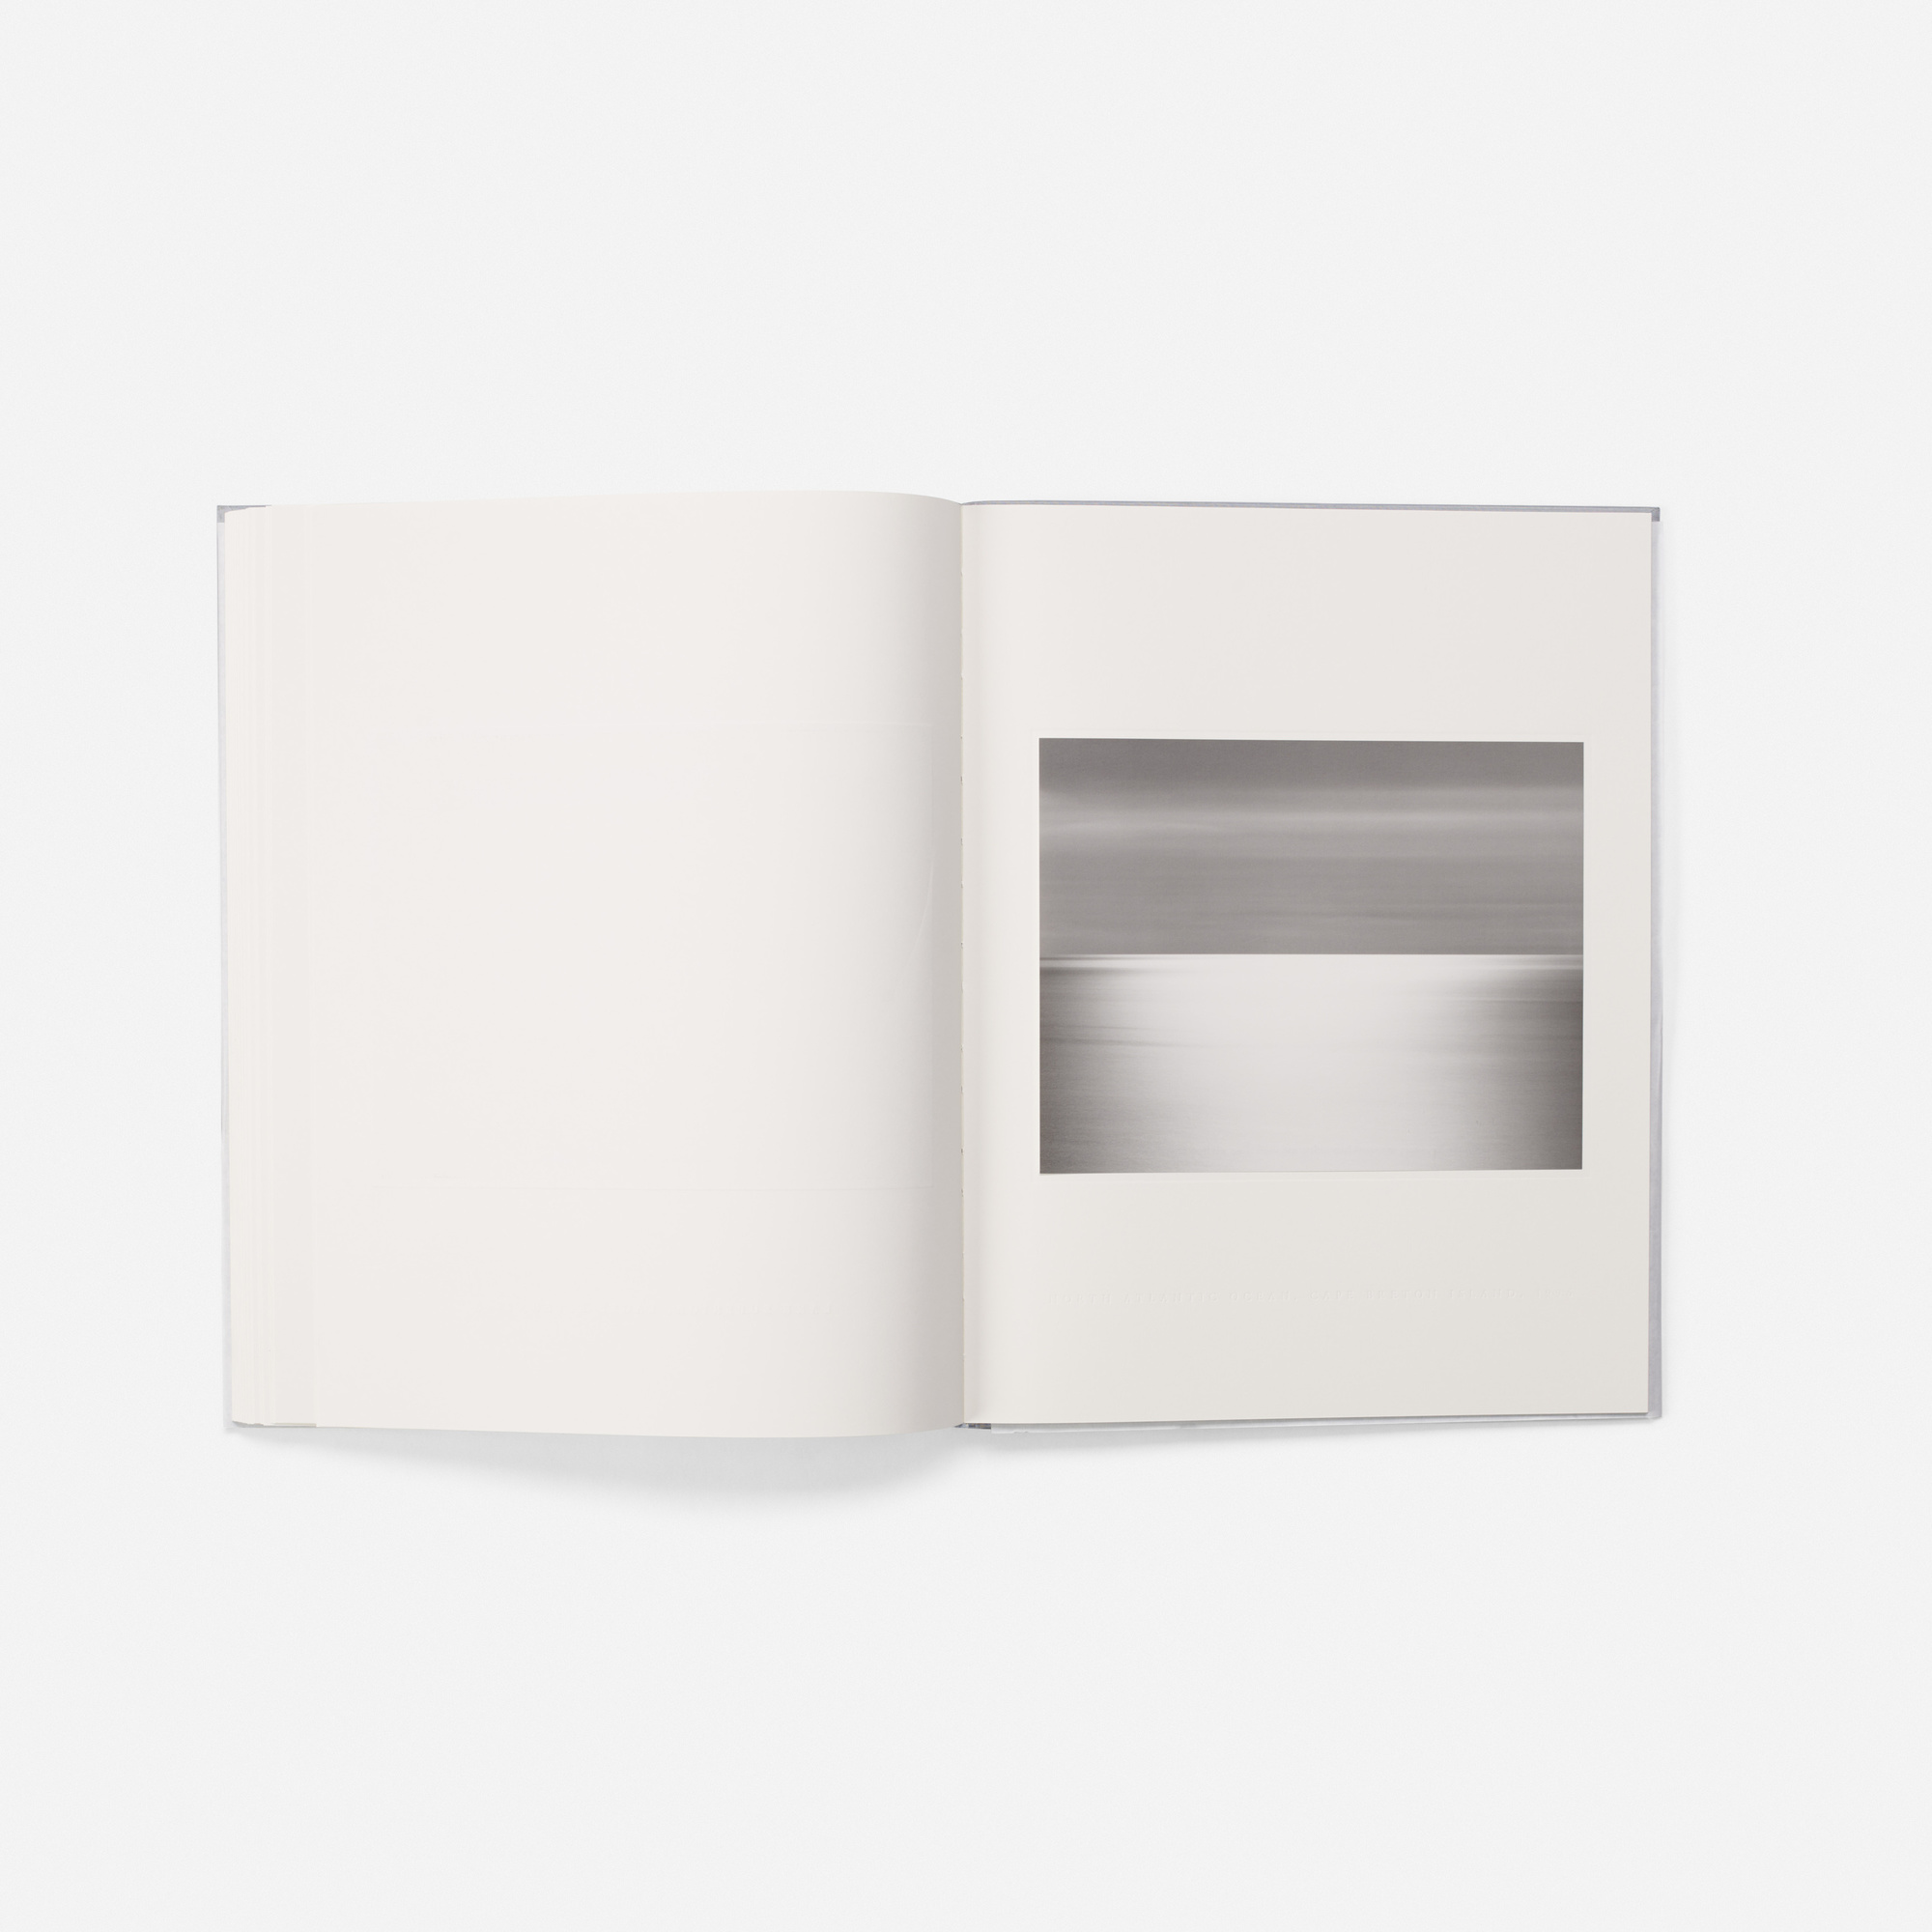 230: Hiroshi Sugimoto / The Long Never and Lightning Fields 304 (8 of 10)